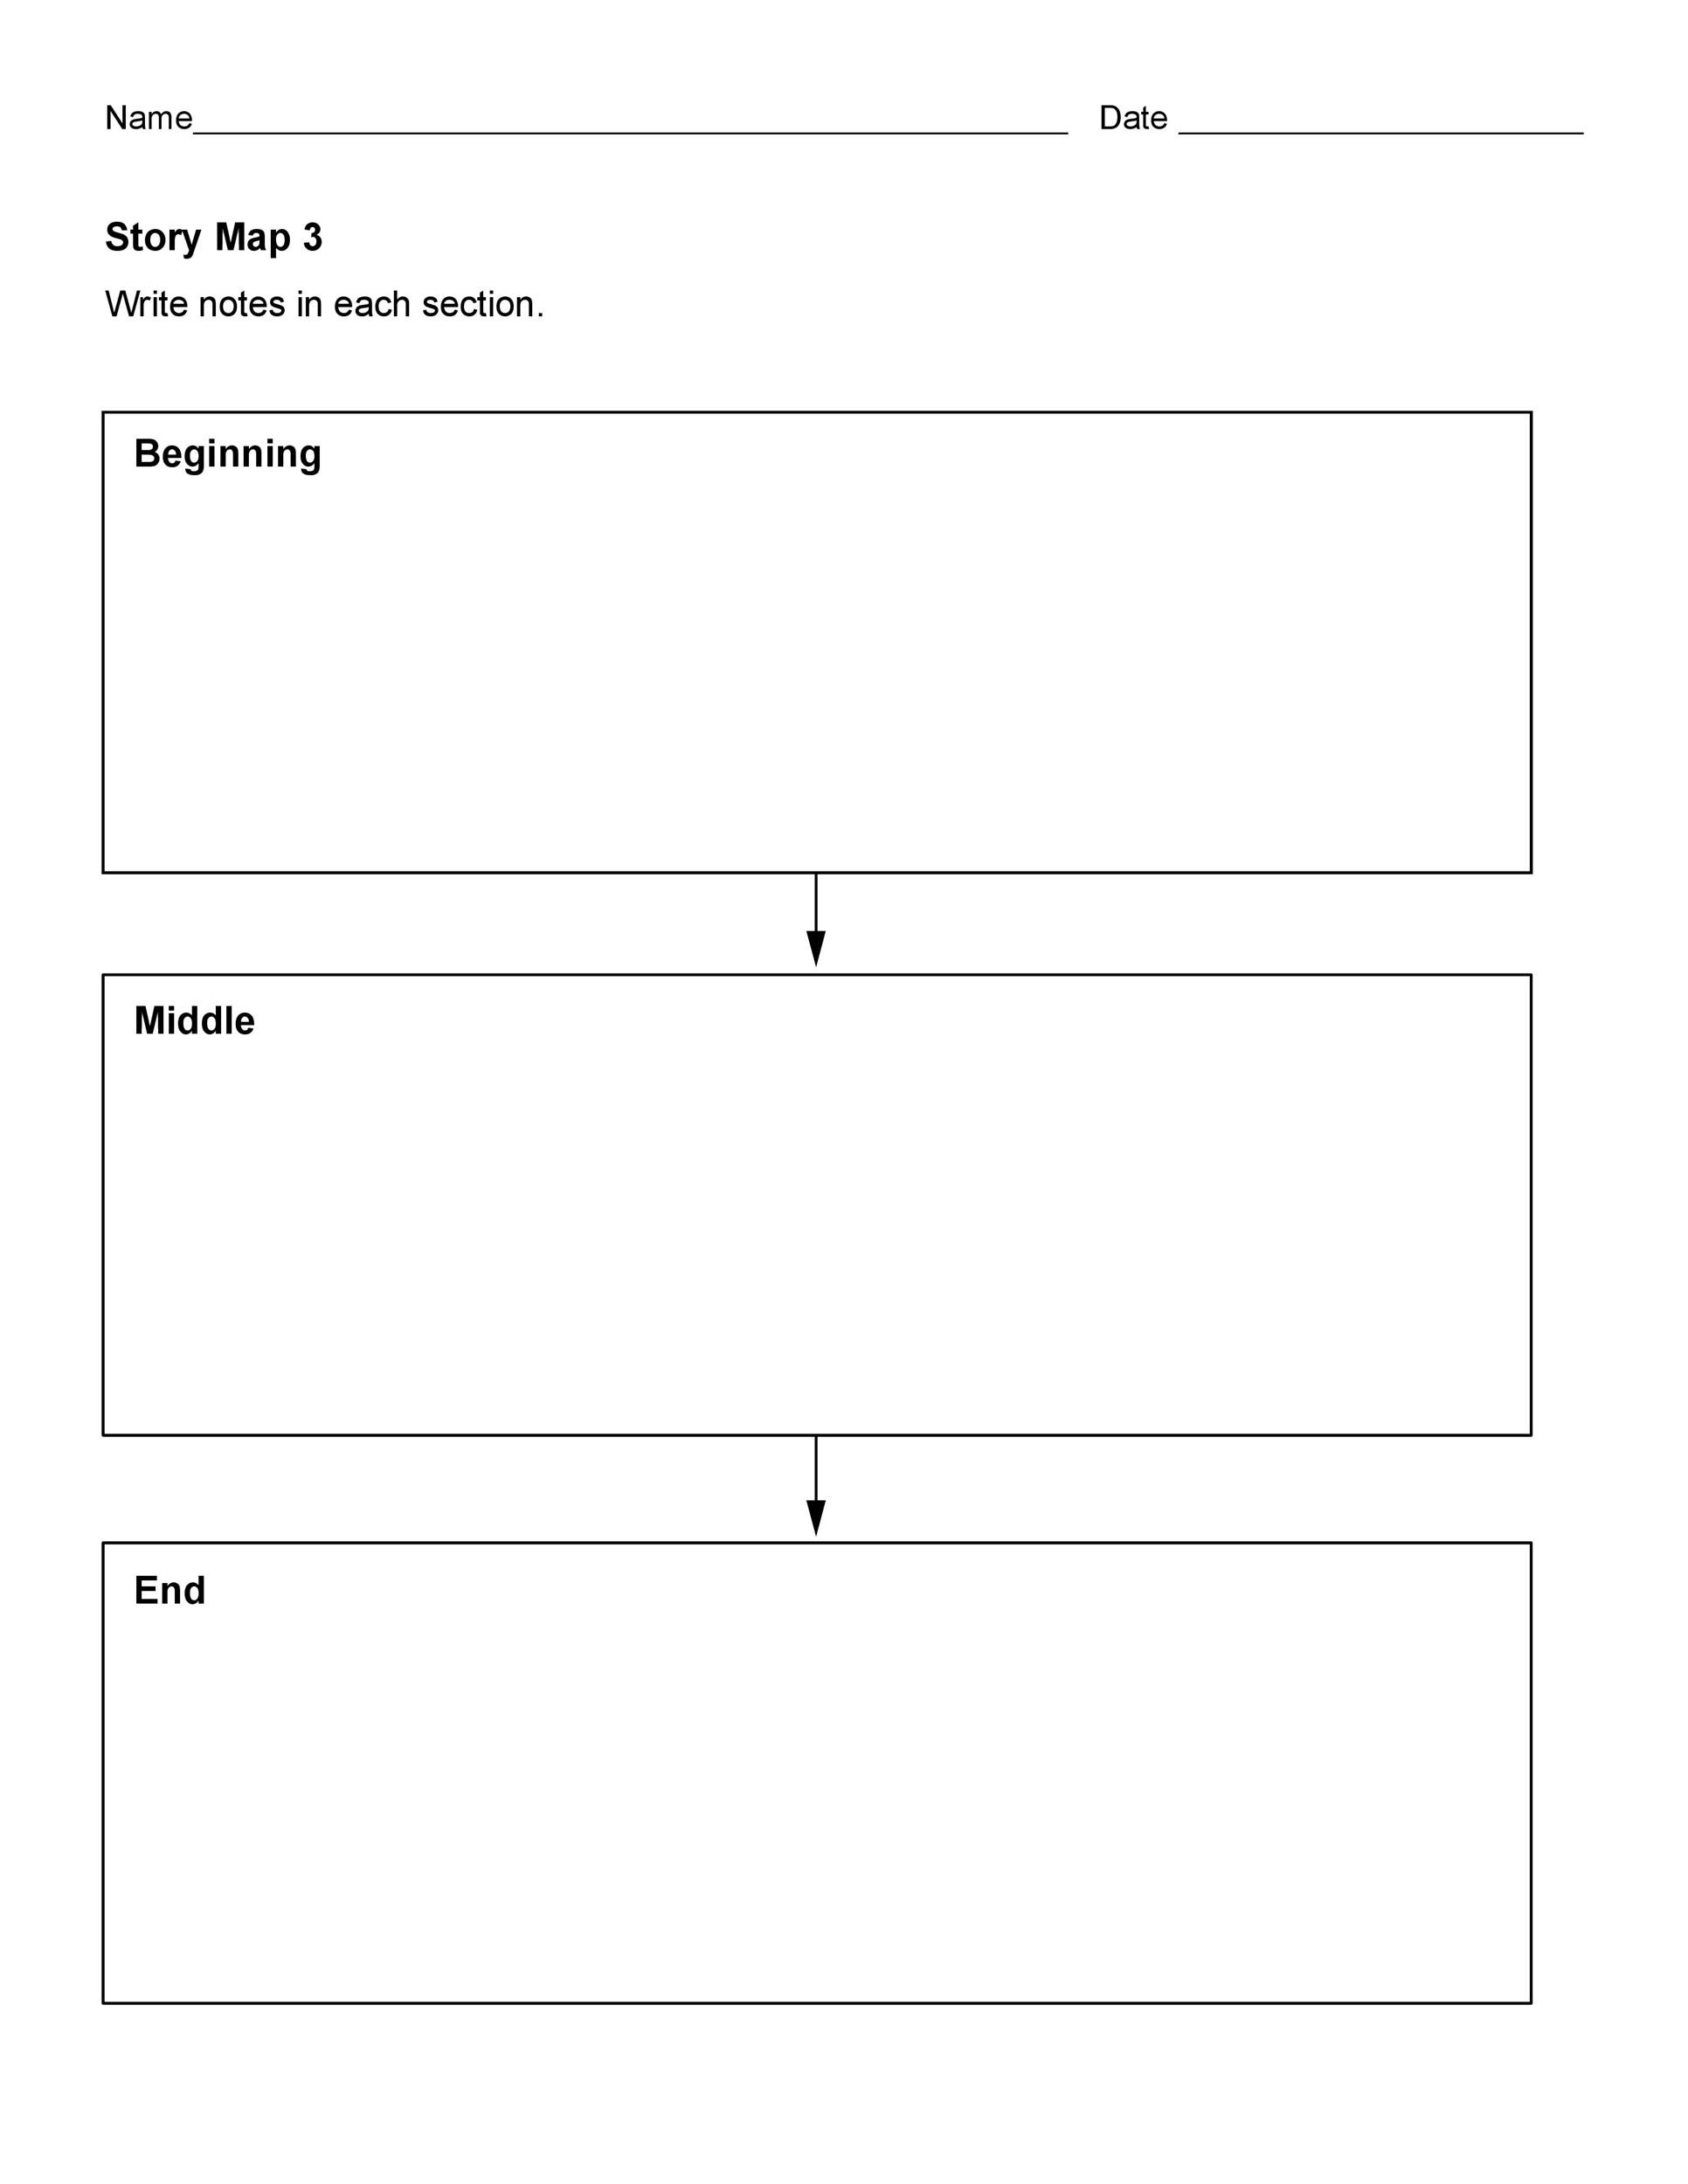 photograph relating to Story Map Template Printable referred to as 41 Cost-free Printable Tale Map Templates [PDF / Phrase] ᐅ